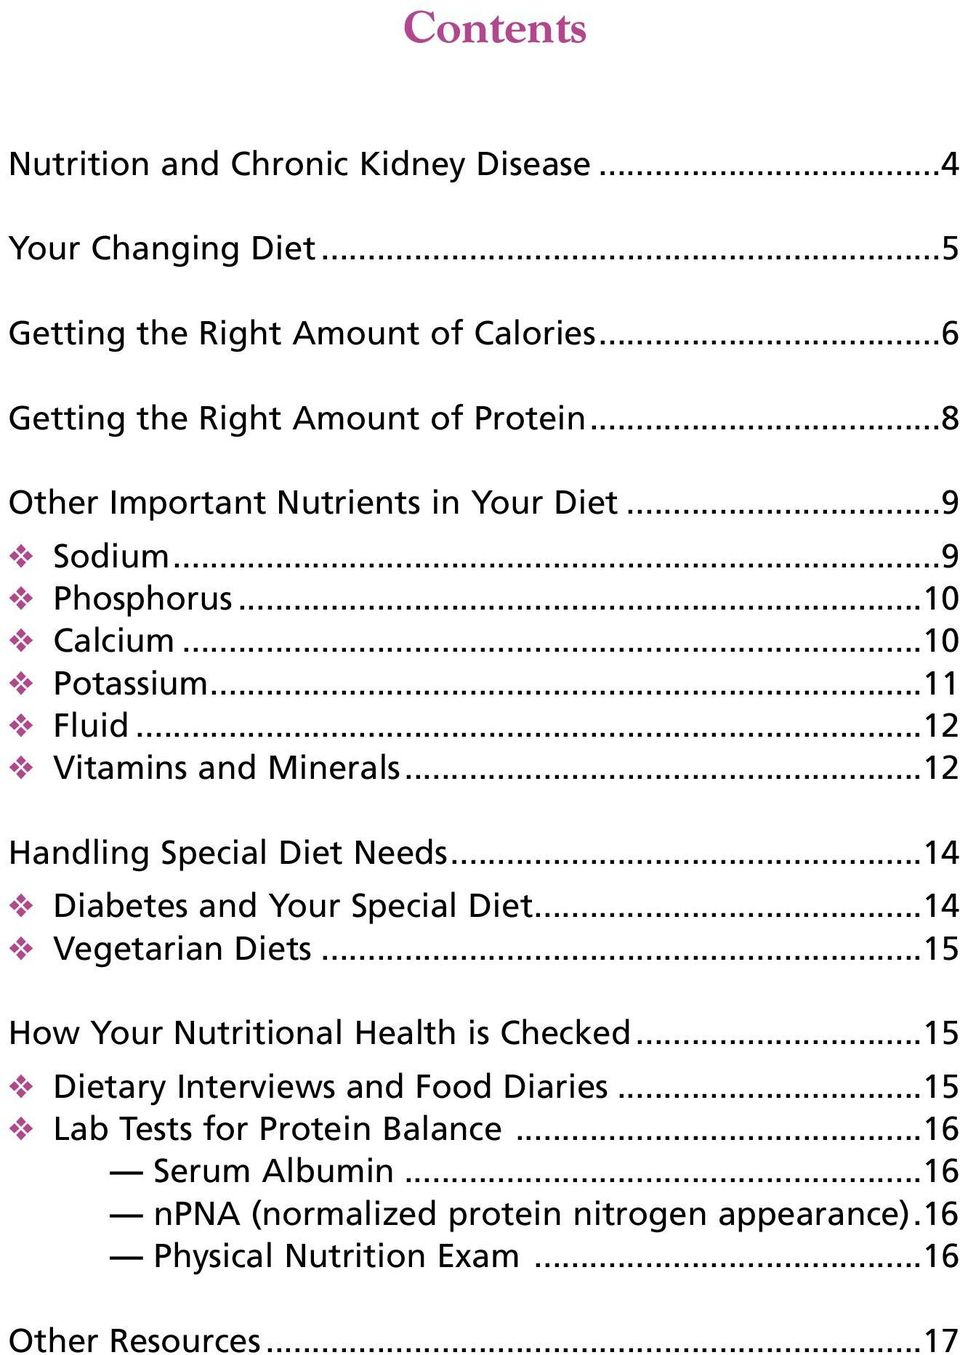 ..12 Handling Special Diet Needs...14 Diabetes and Your Special Diet...14 Vegetarian Diets...15 How Your Nutritional Health is Checked.